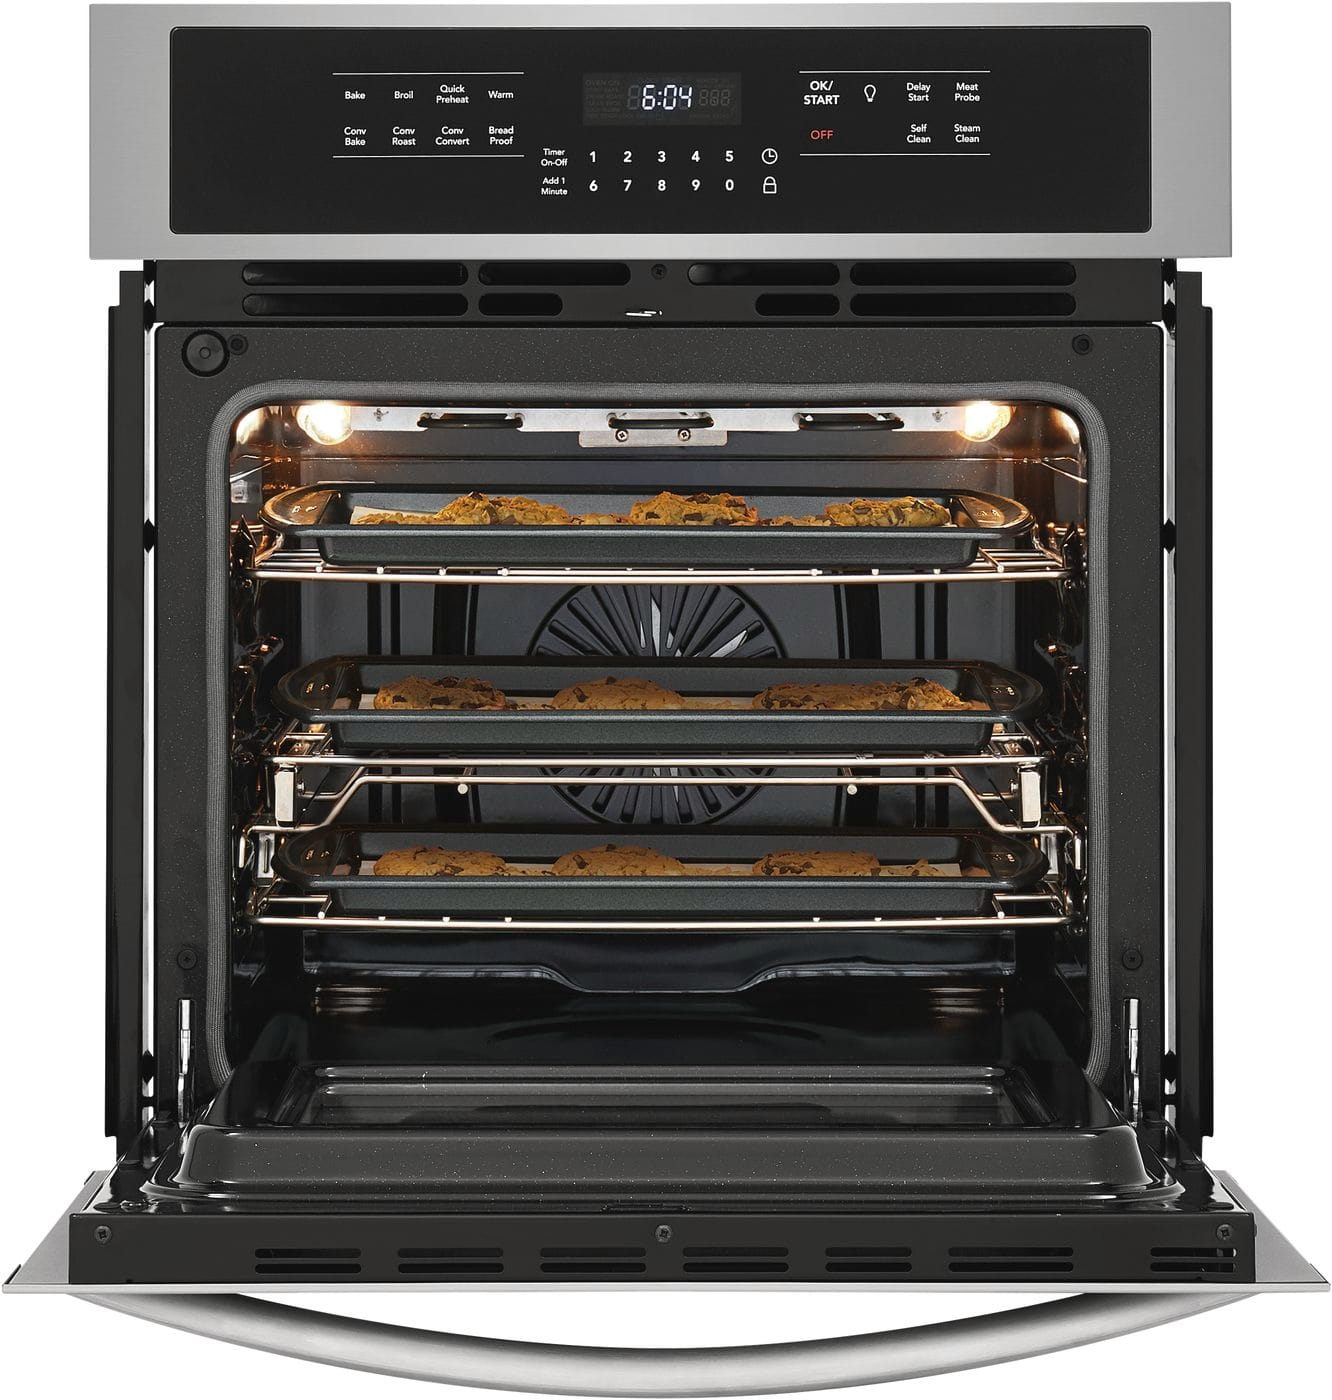 "Model: FGEW2766UF | Frigidaire 27"" Single Electric Wall Oven"